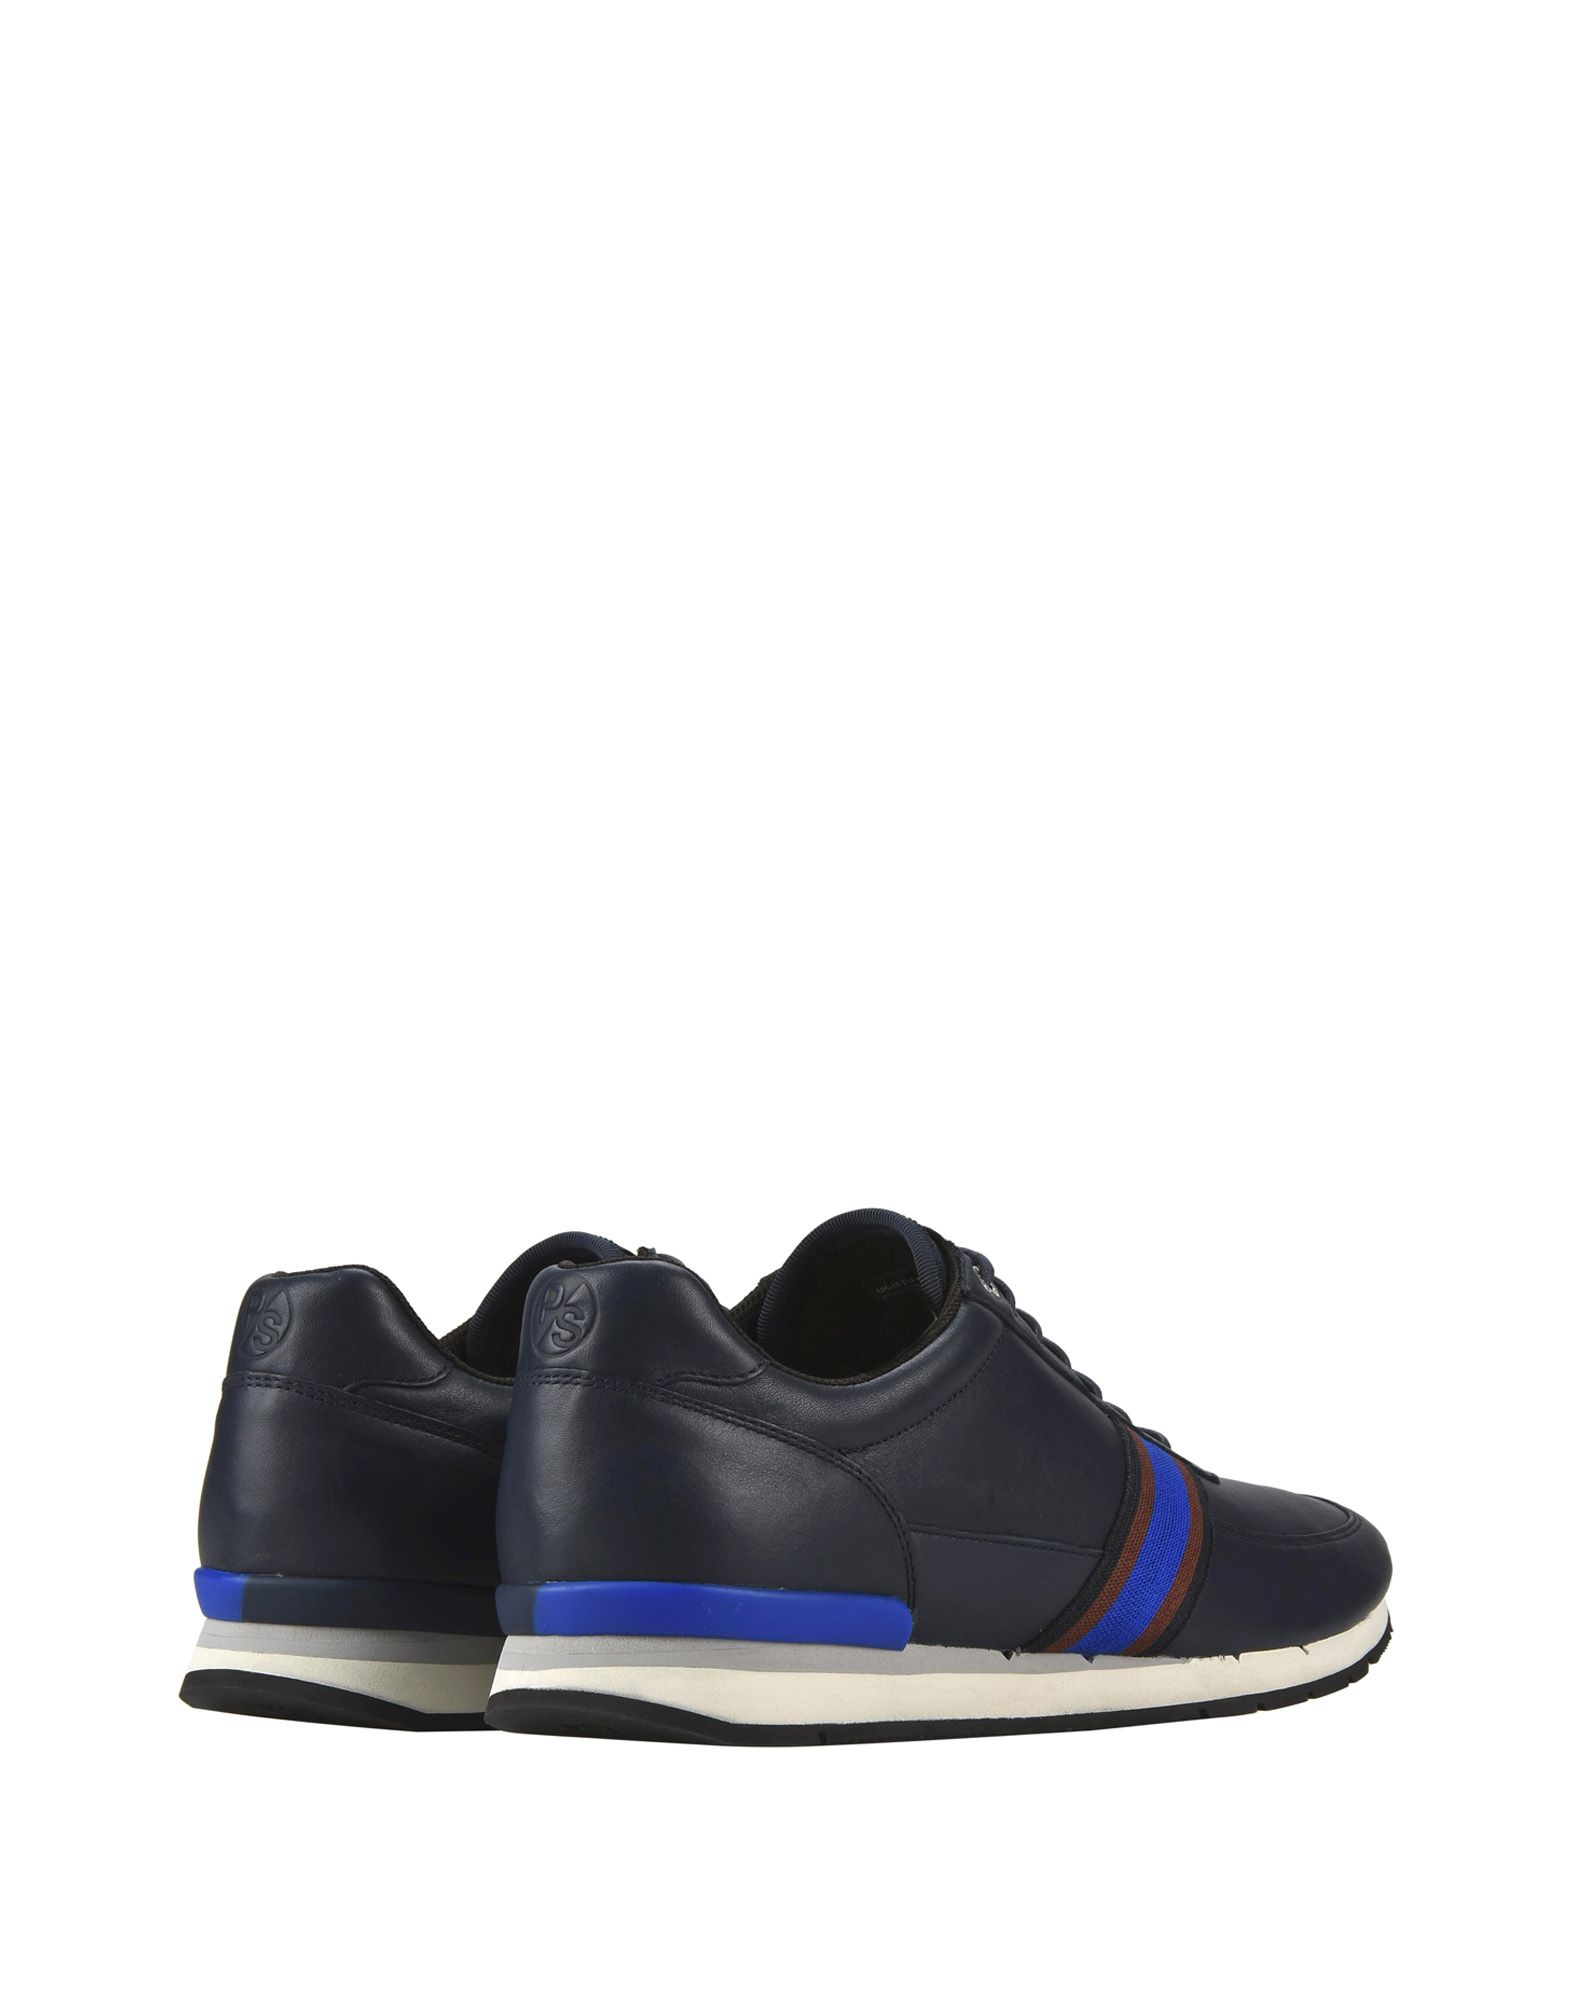 Sneakers Ps By Paul Smith Mens Shoe Swanson Galaxy - Homme - Sneakers Ps By Paul Smith sur